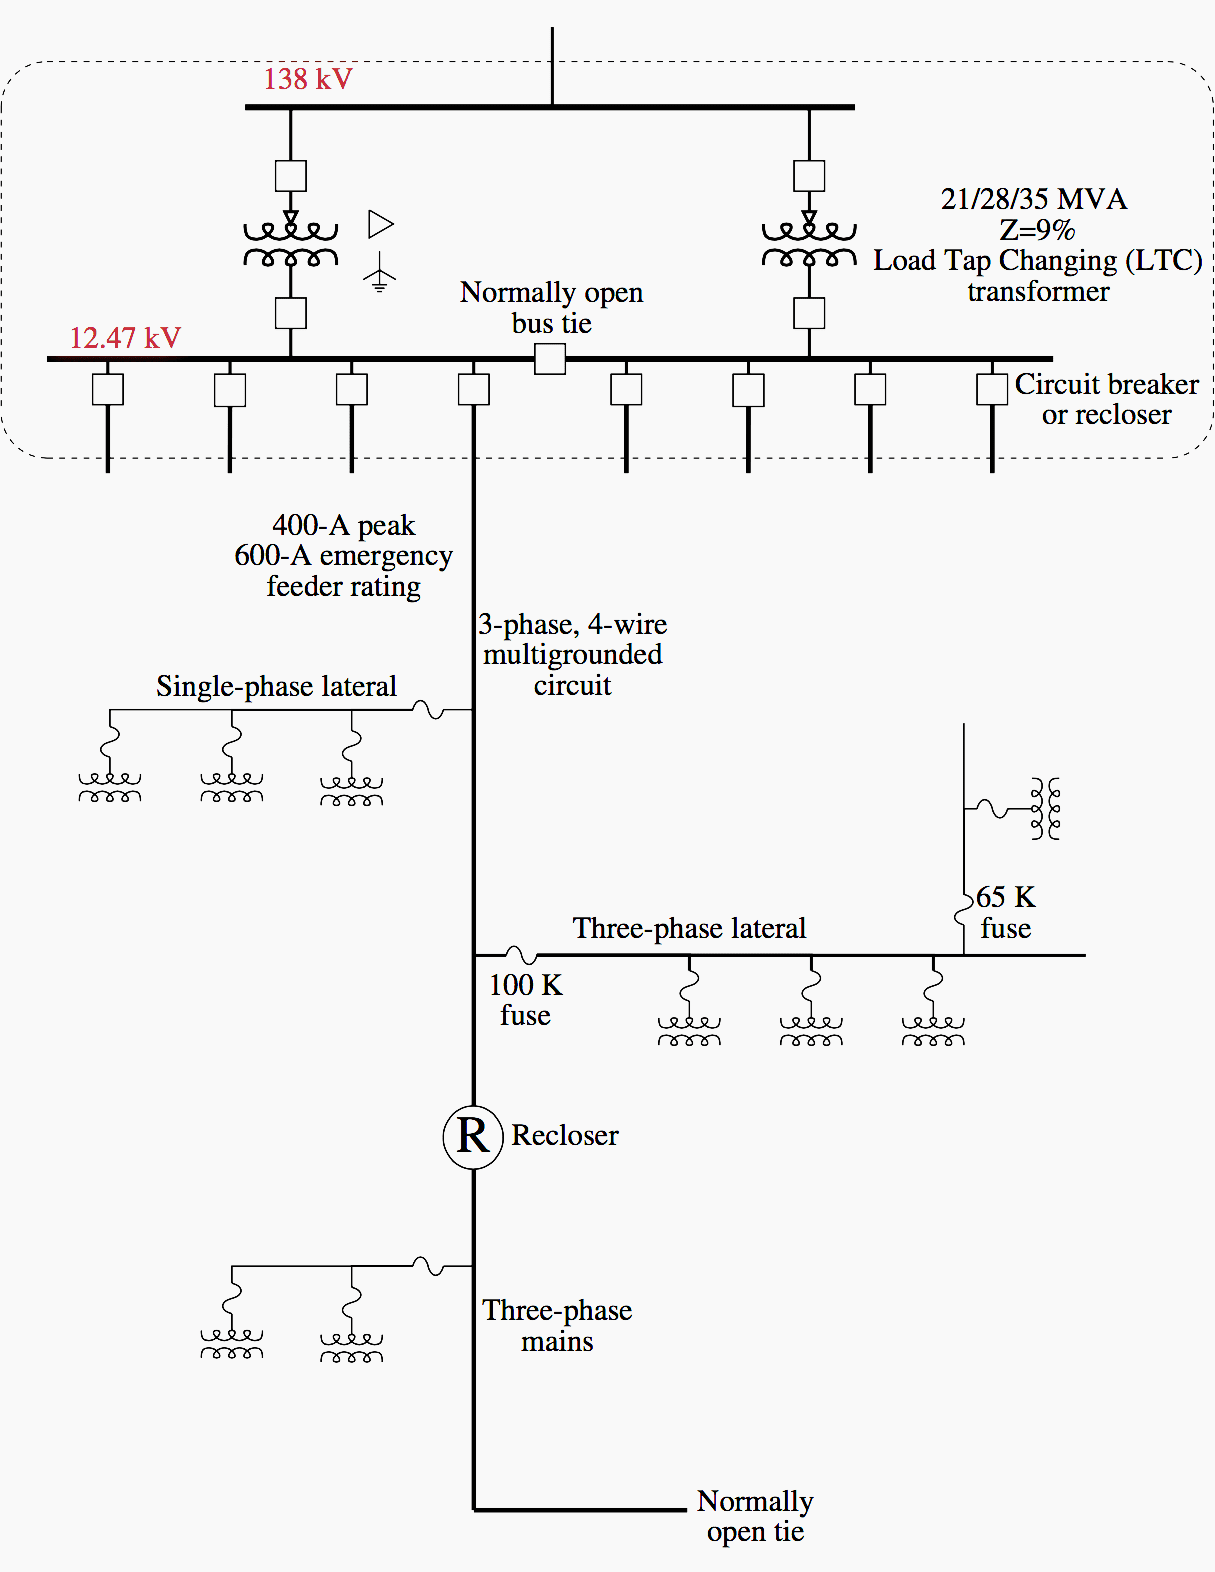 hight resolution of typical distribution substation with one of several feeders shown